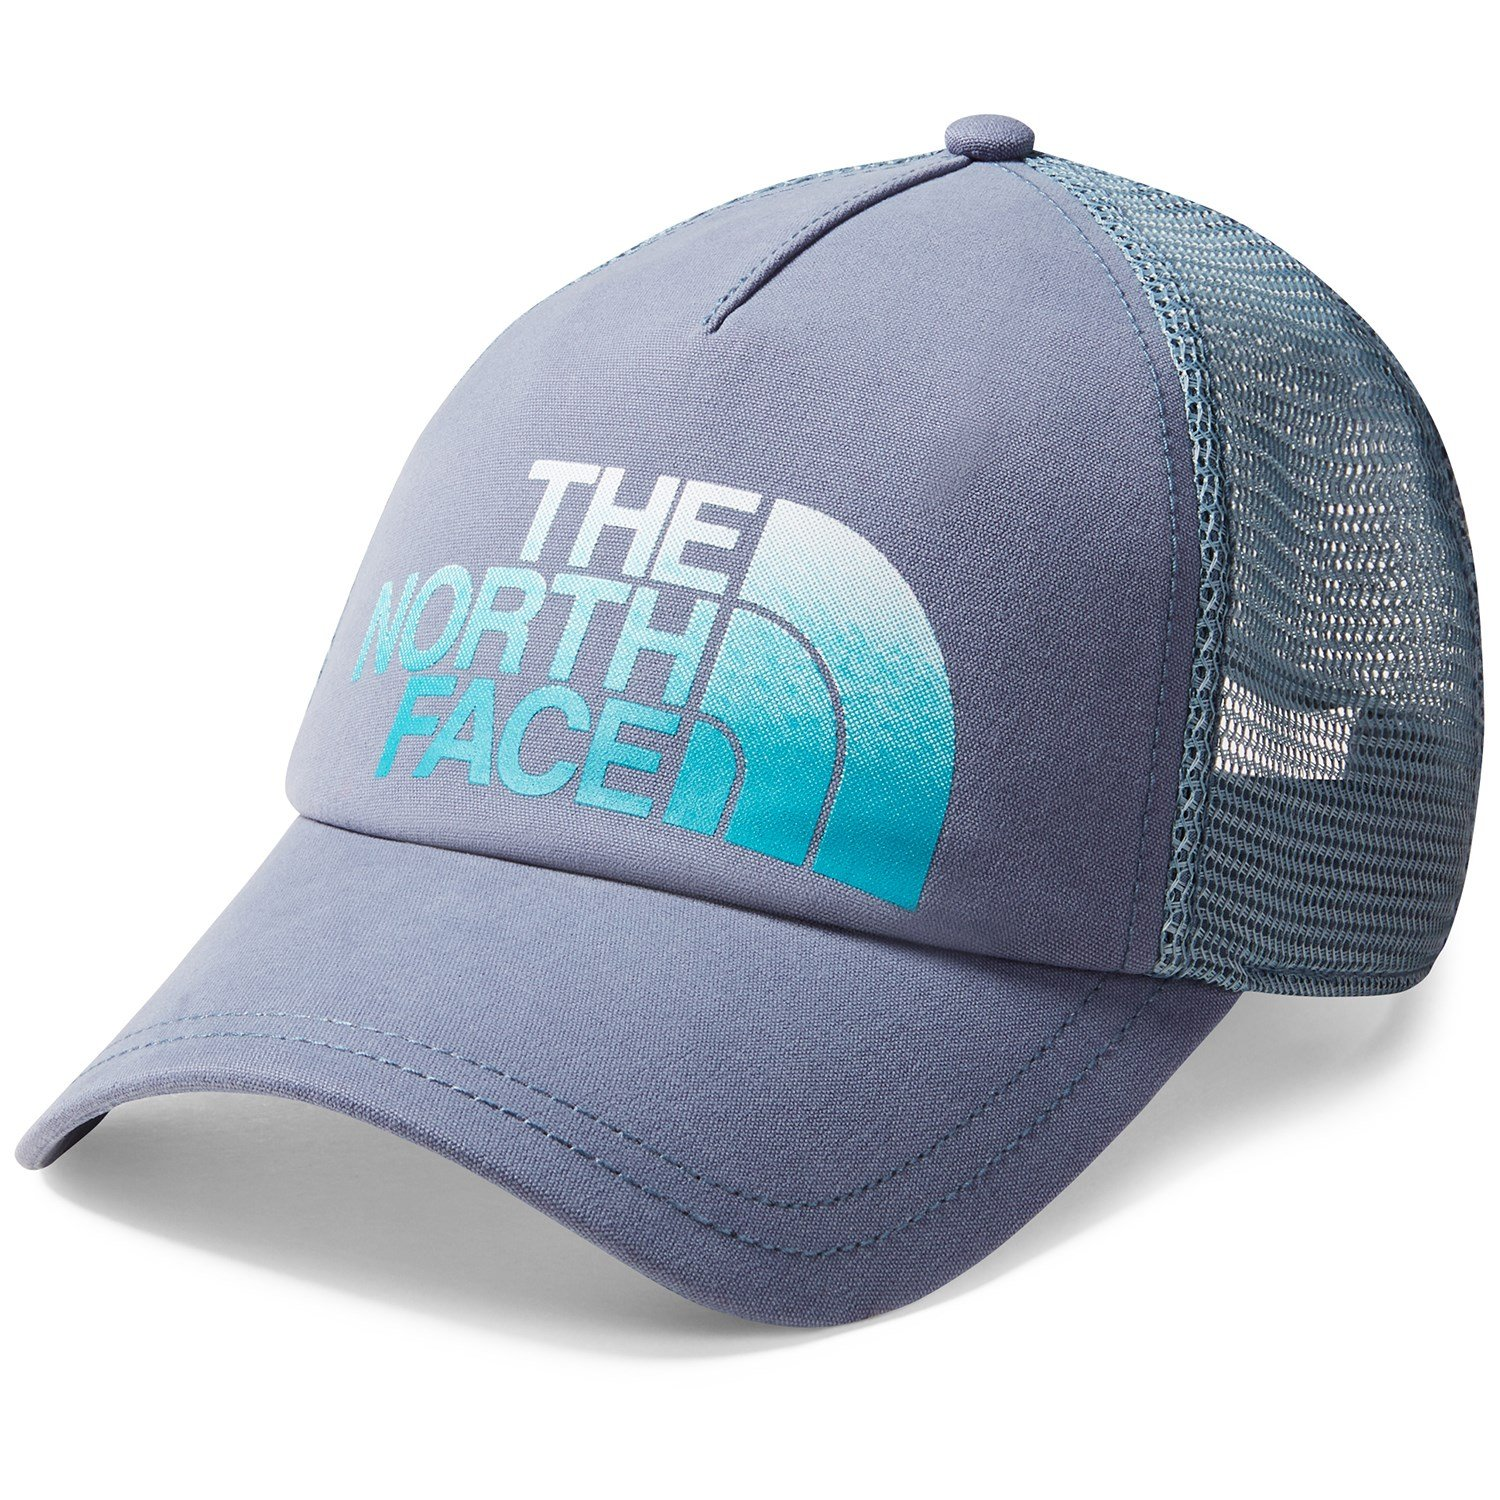 a2931f5c3 The North Face Low Pro Trucker Hat - Women's | evo